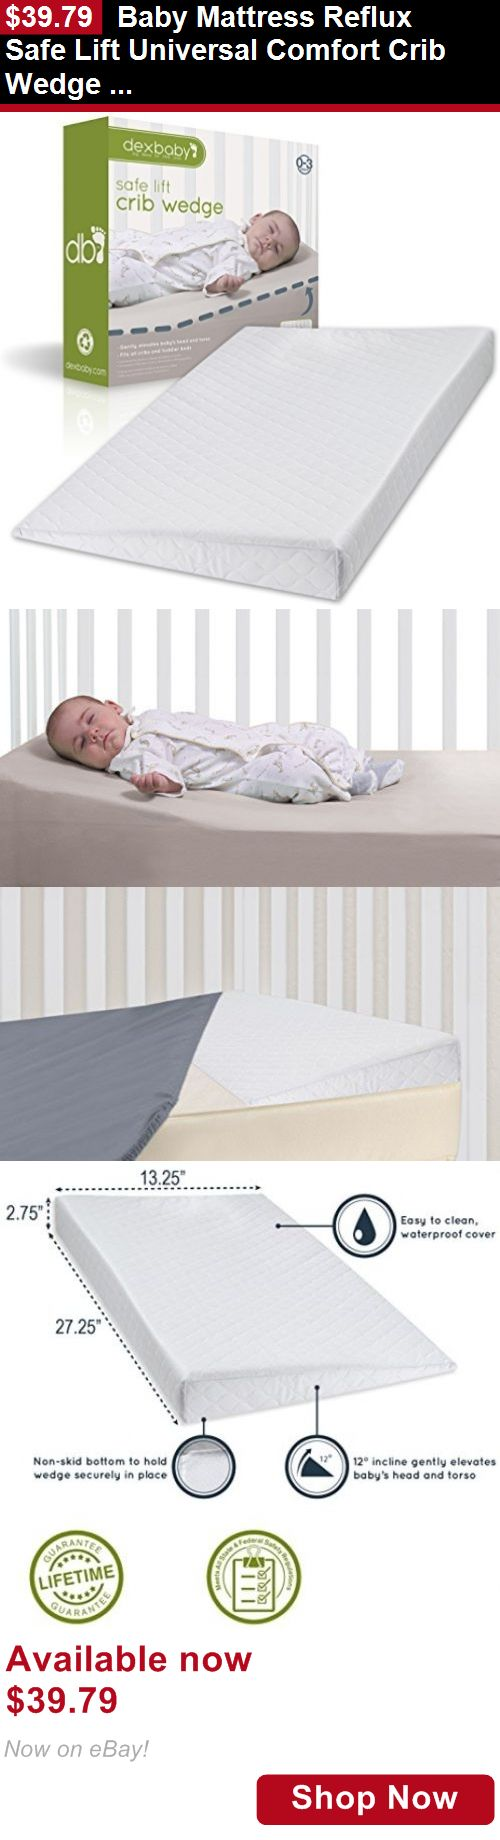 Wedge for crib babies r us - Baby Safety Sleep Positioners Baby Mattress Reflux Safe Lift Universal Comfort Crib Wedge Sleep Positioner